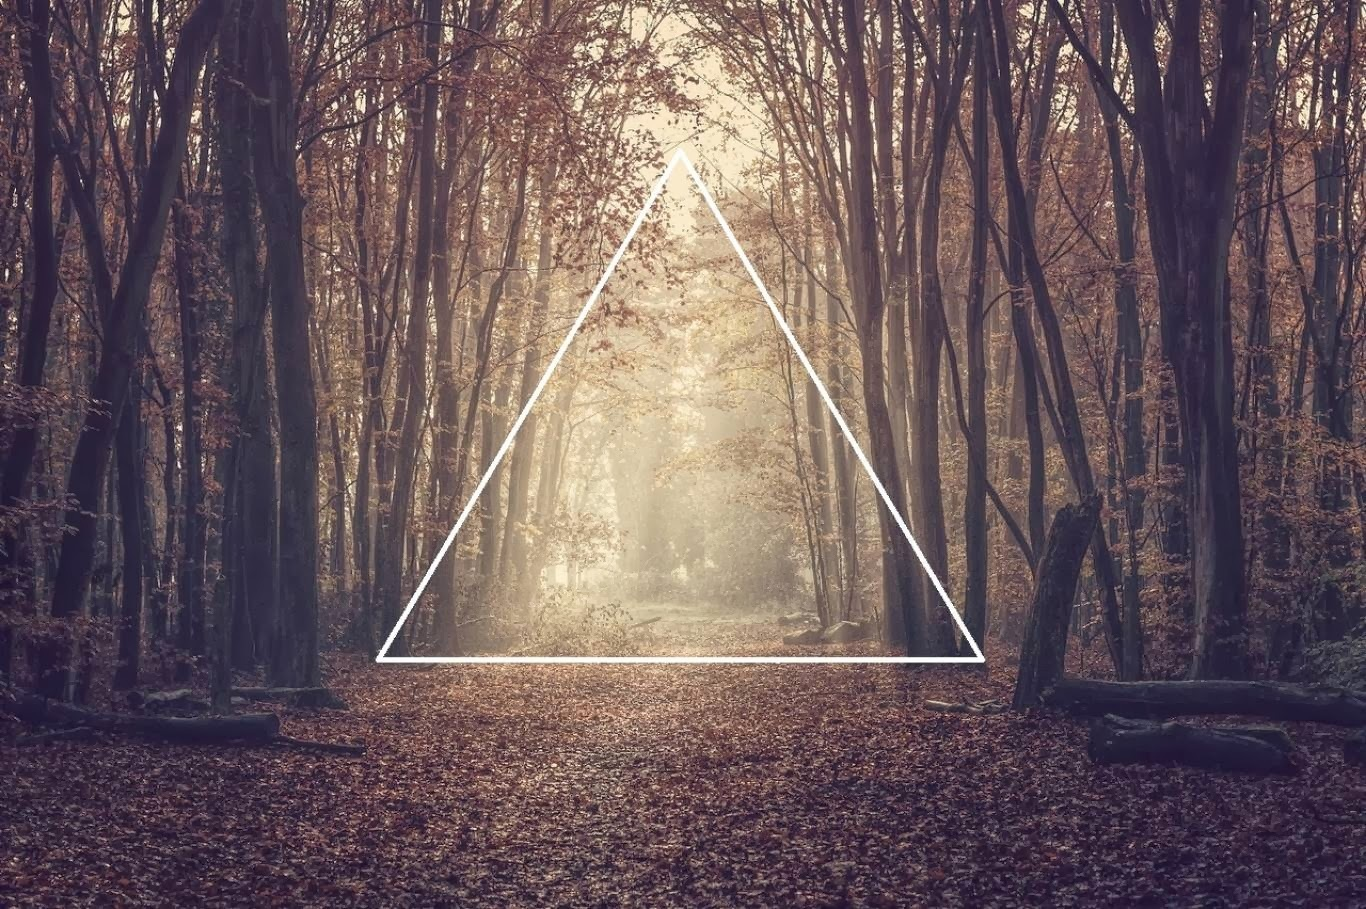 Image for tumblr triangle wallpaper Images HD | FASHION